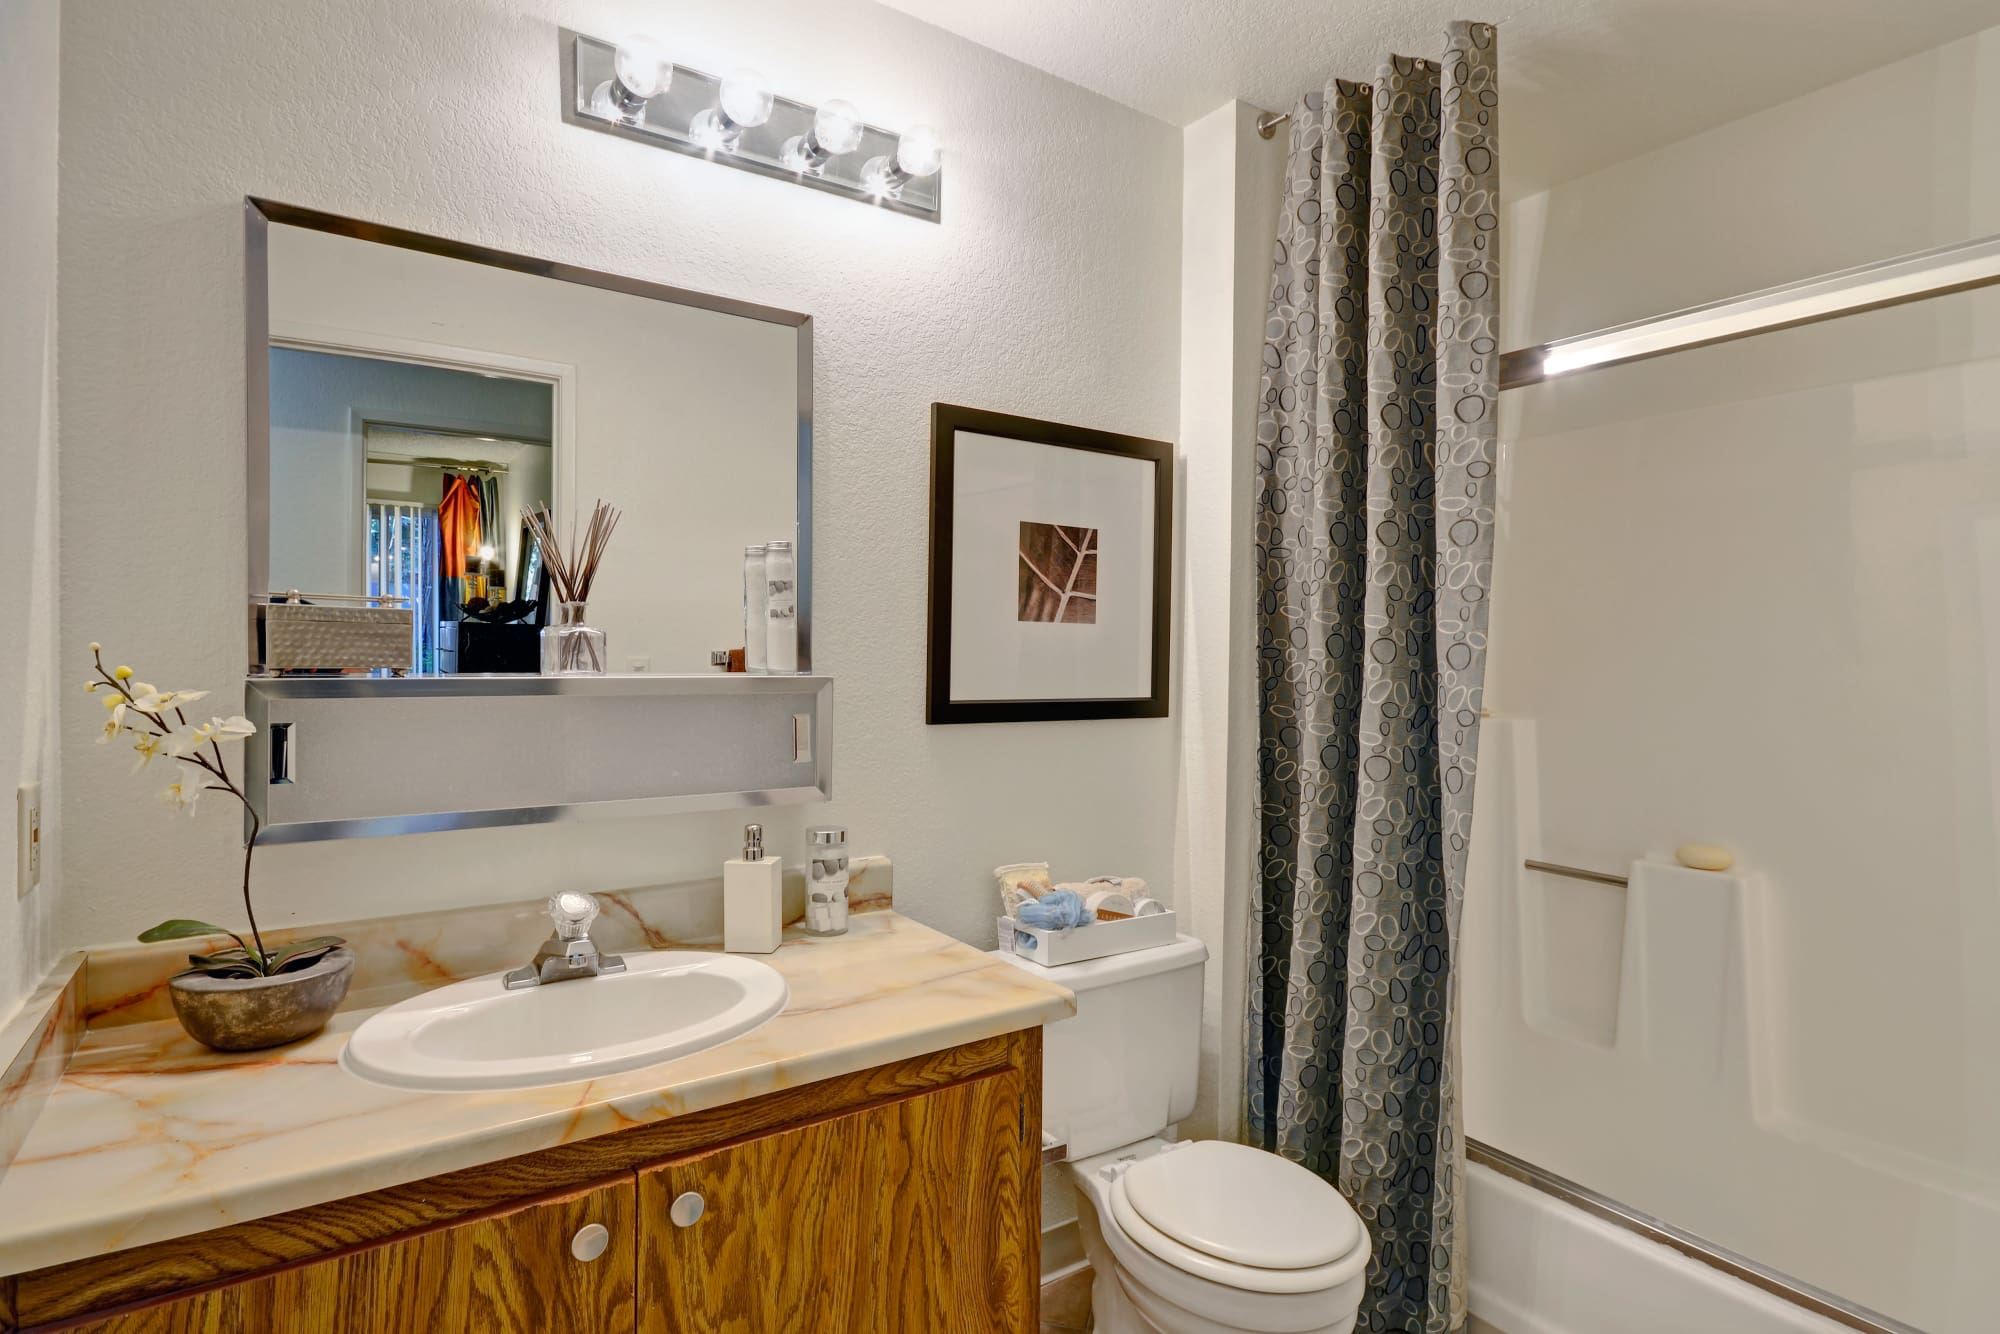 Avery Park Apartments offers nice bathrooms with large mirrors and tub